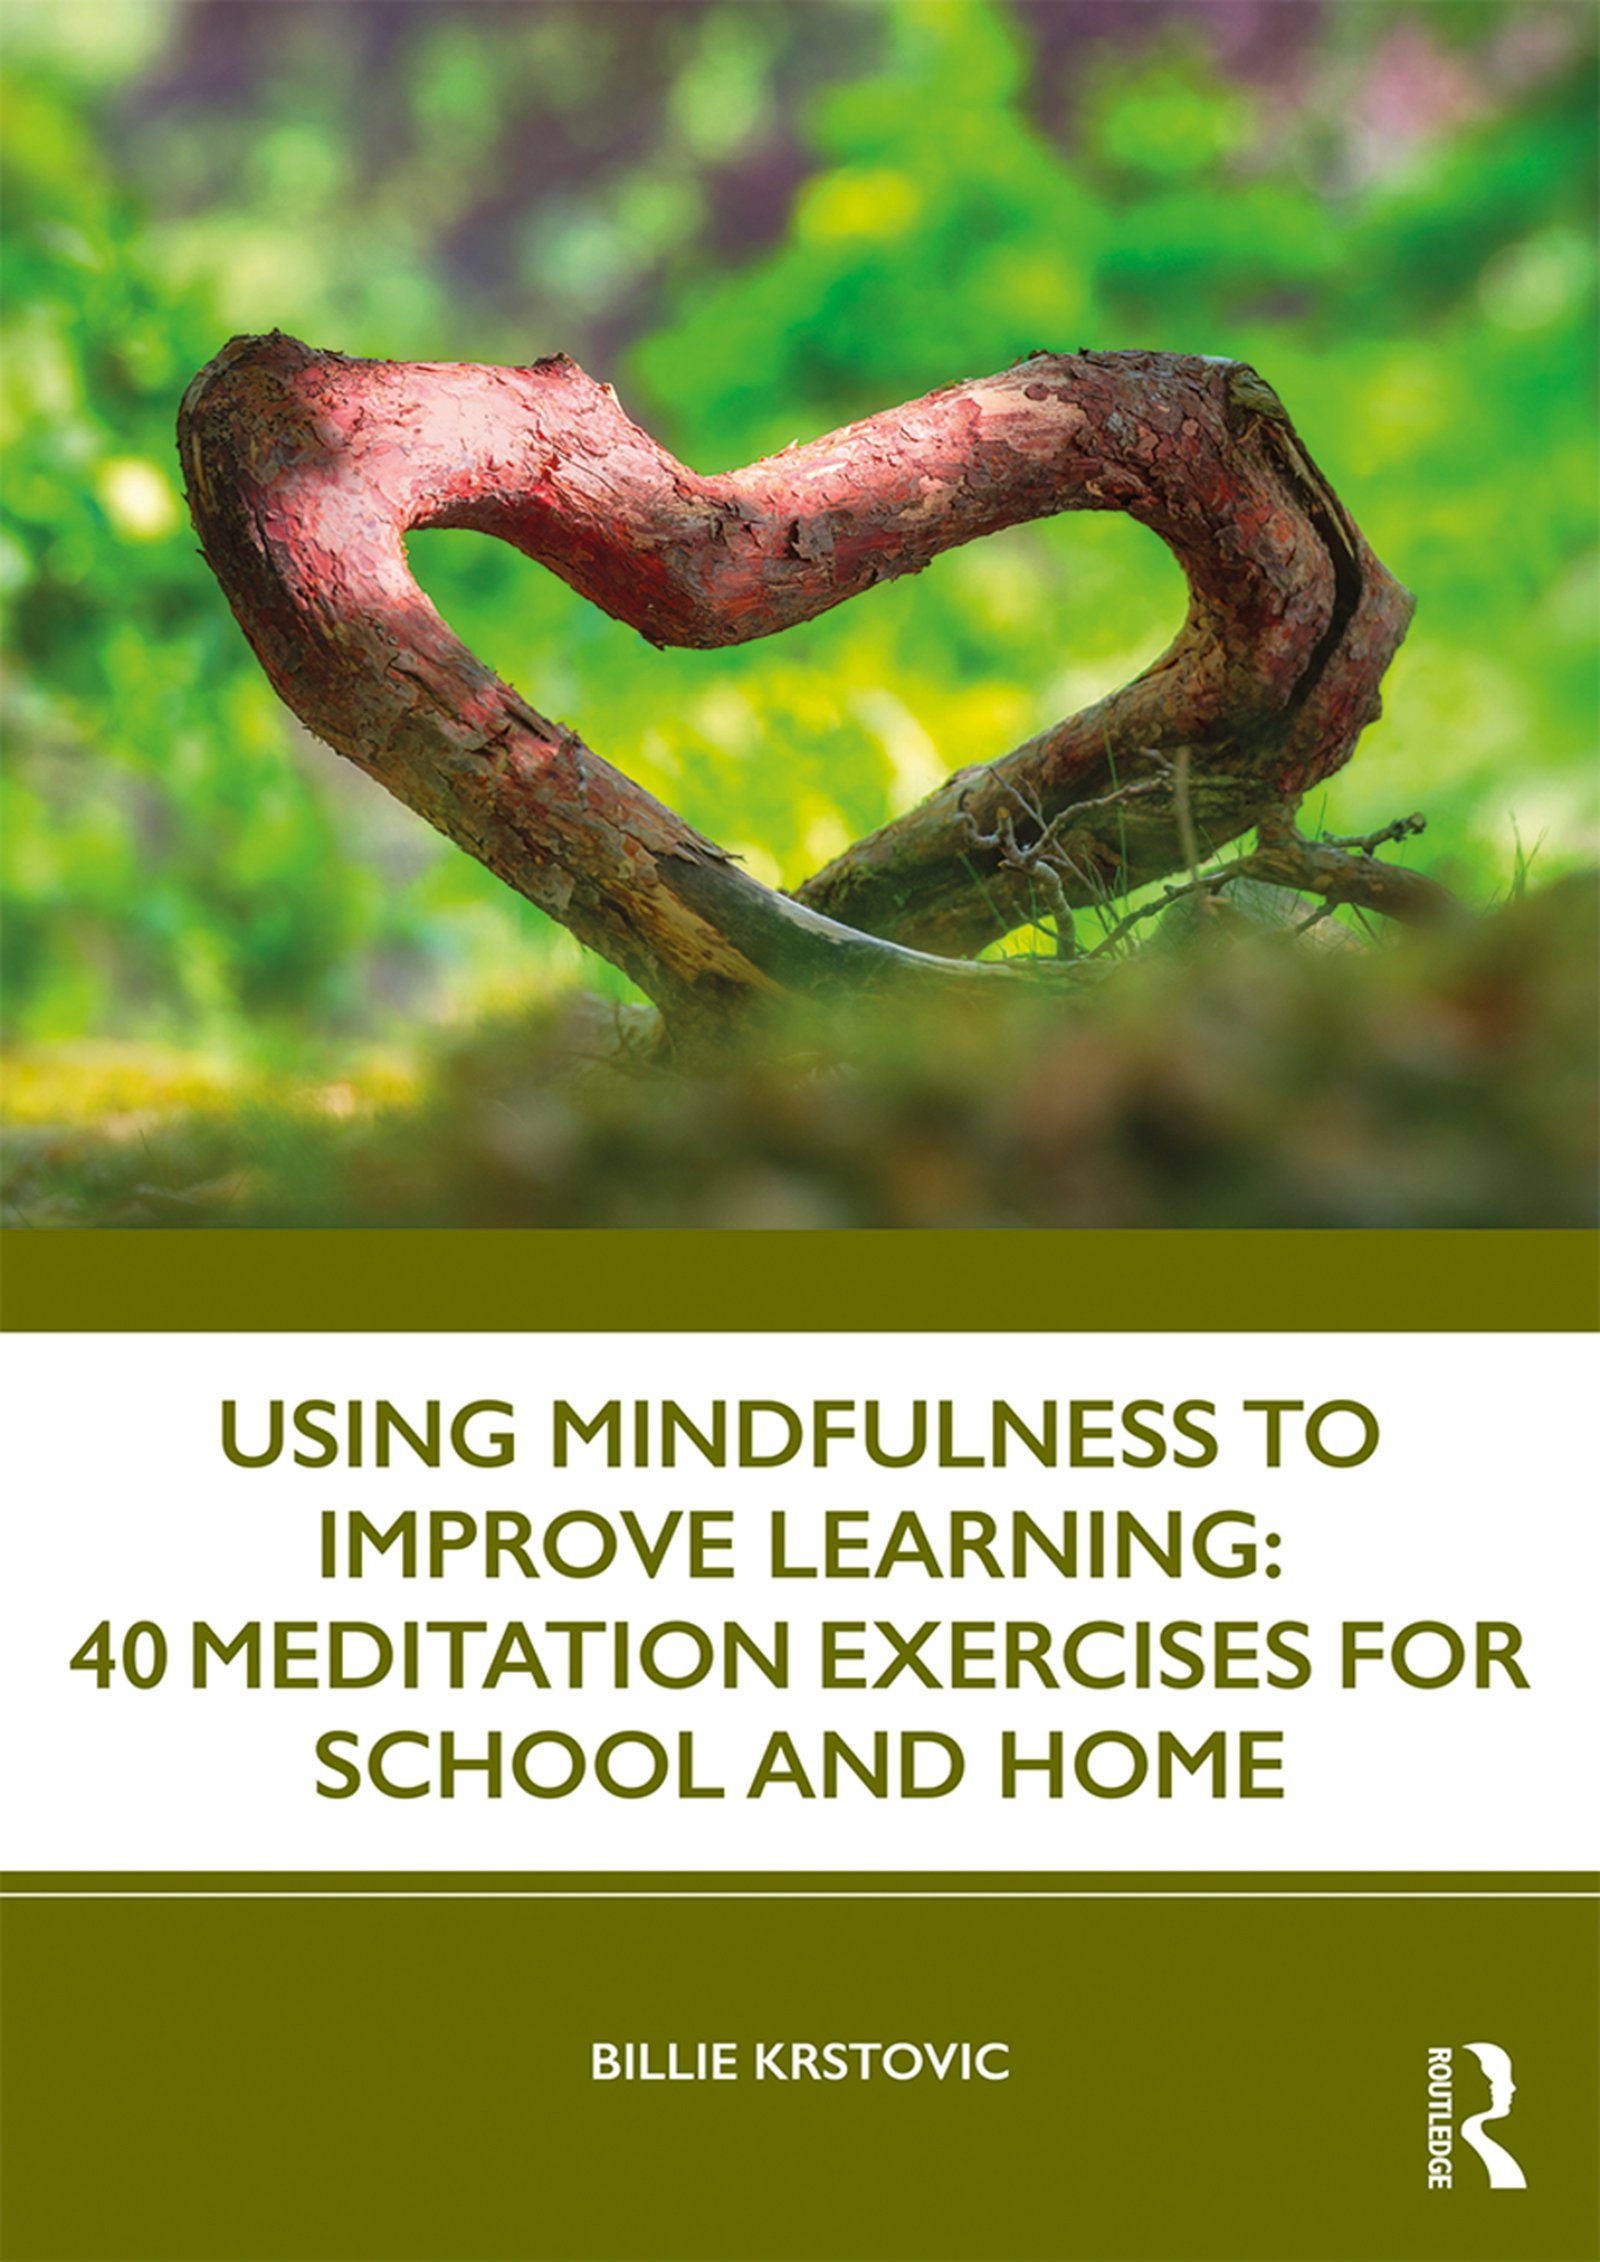 Using Mindfulness to Improve Learning: 40 Meditation Exercises for School and Home book cover